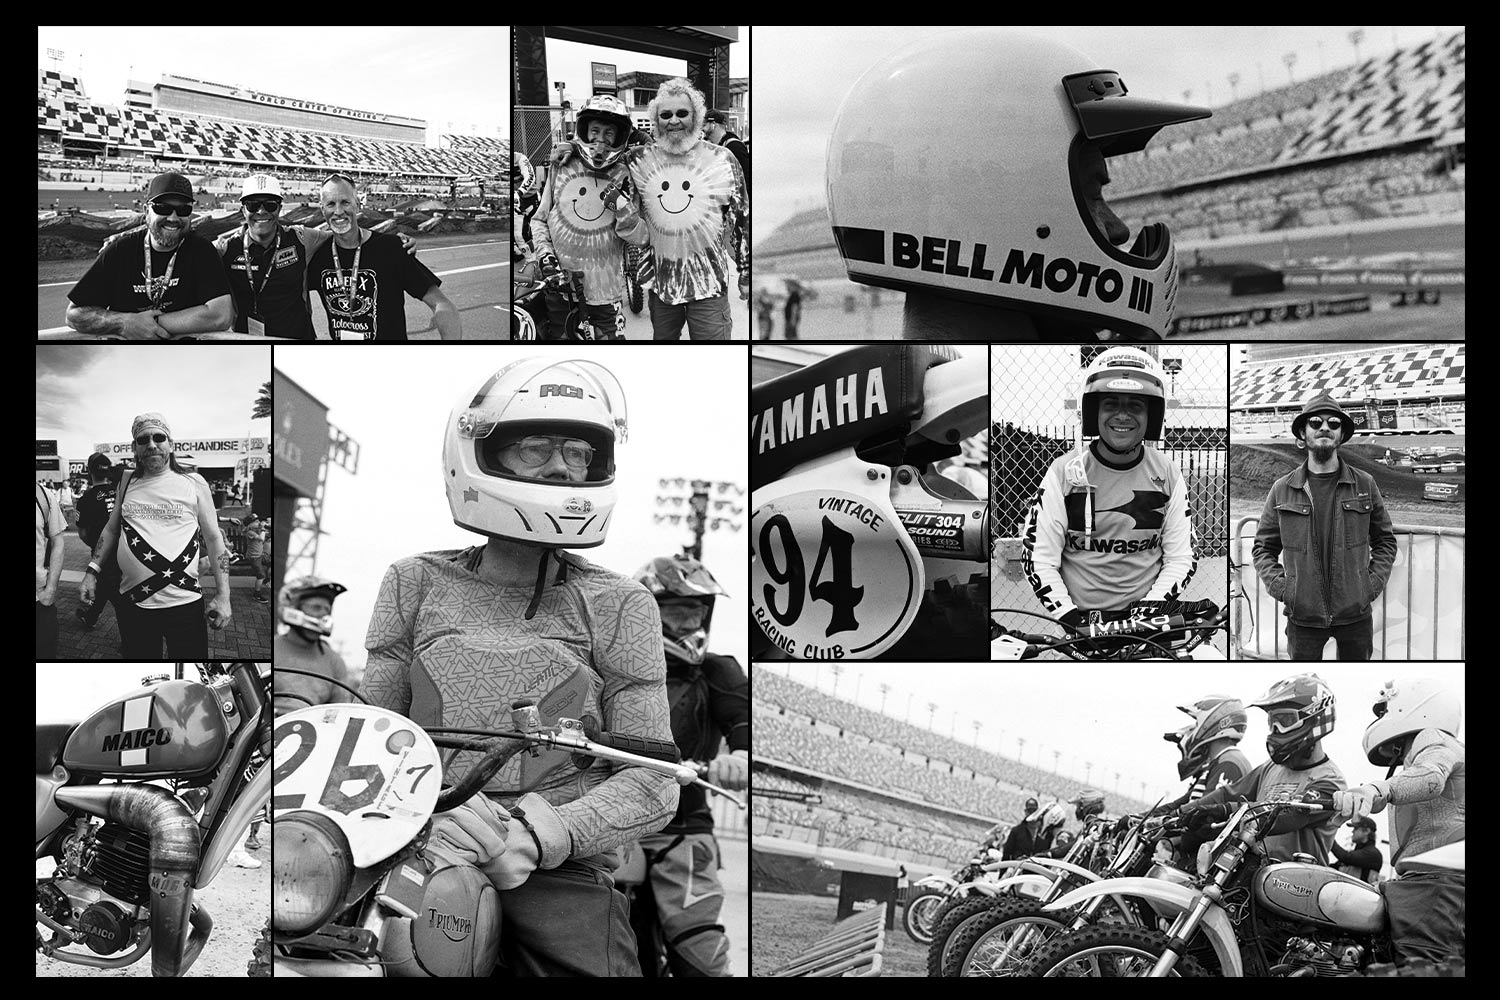 There was a vintage race added to the Ricky Carmichael Daytona Amateur Supercross